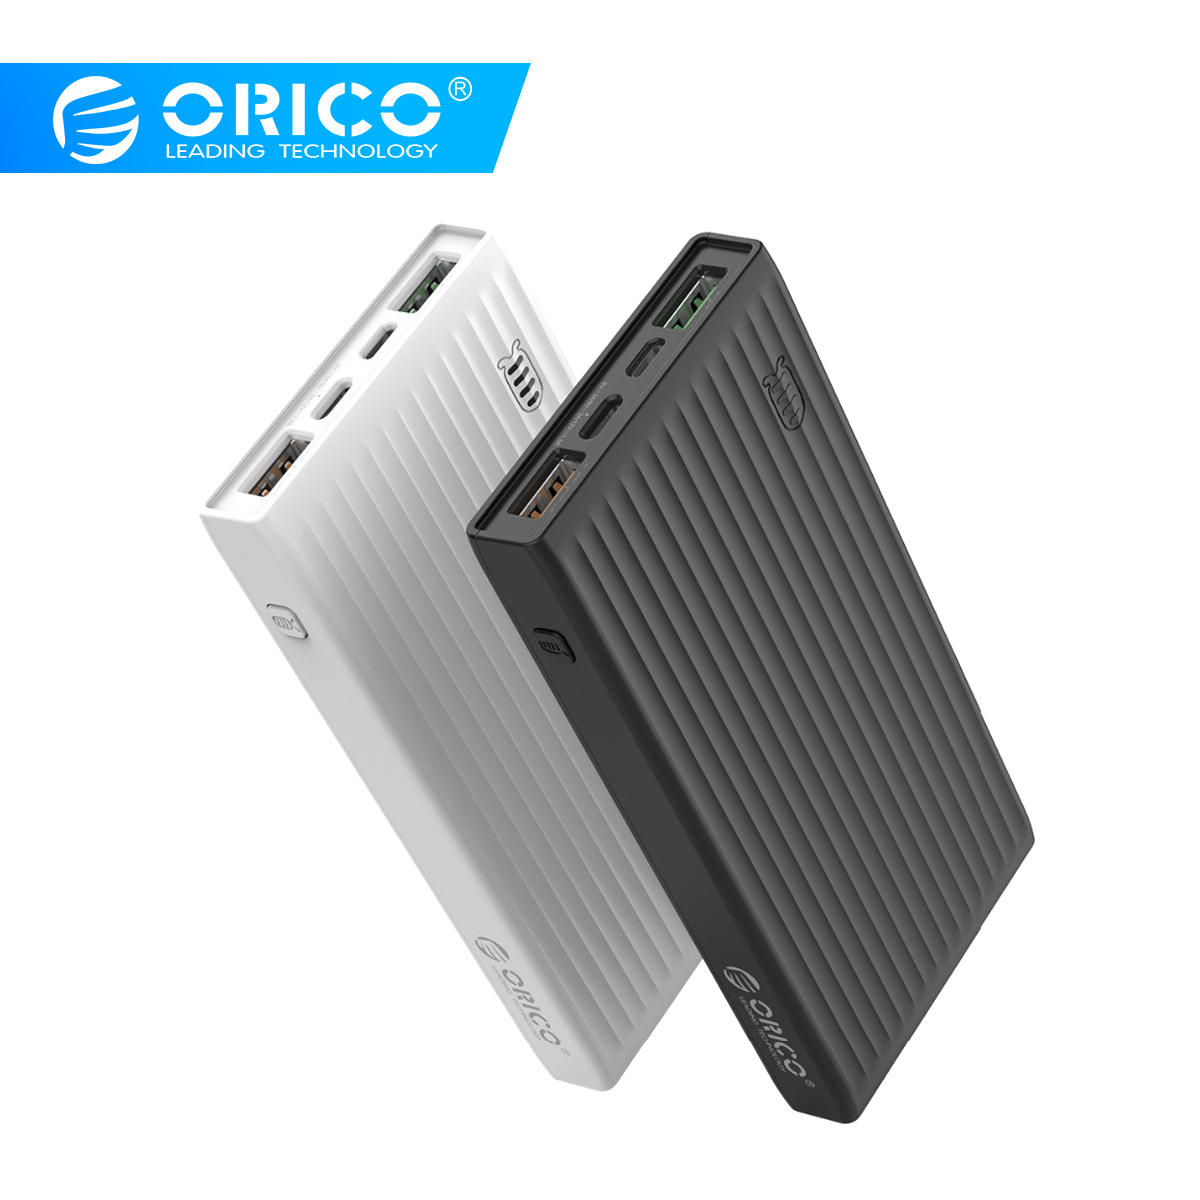 ORICO 20000mAh Universal Power Bank QC3.0 Quick Charge Dual-way Powerbank External Phone Backup Battery Charge For IPhone Huawei